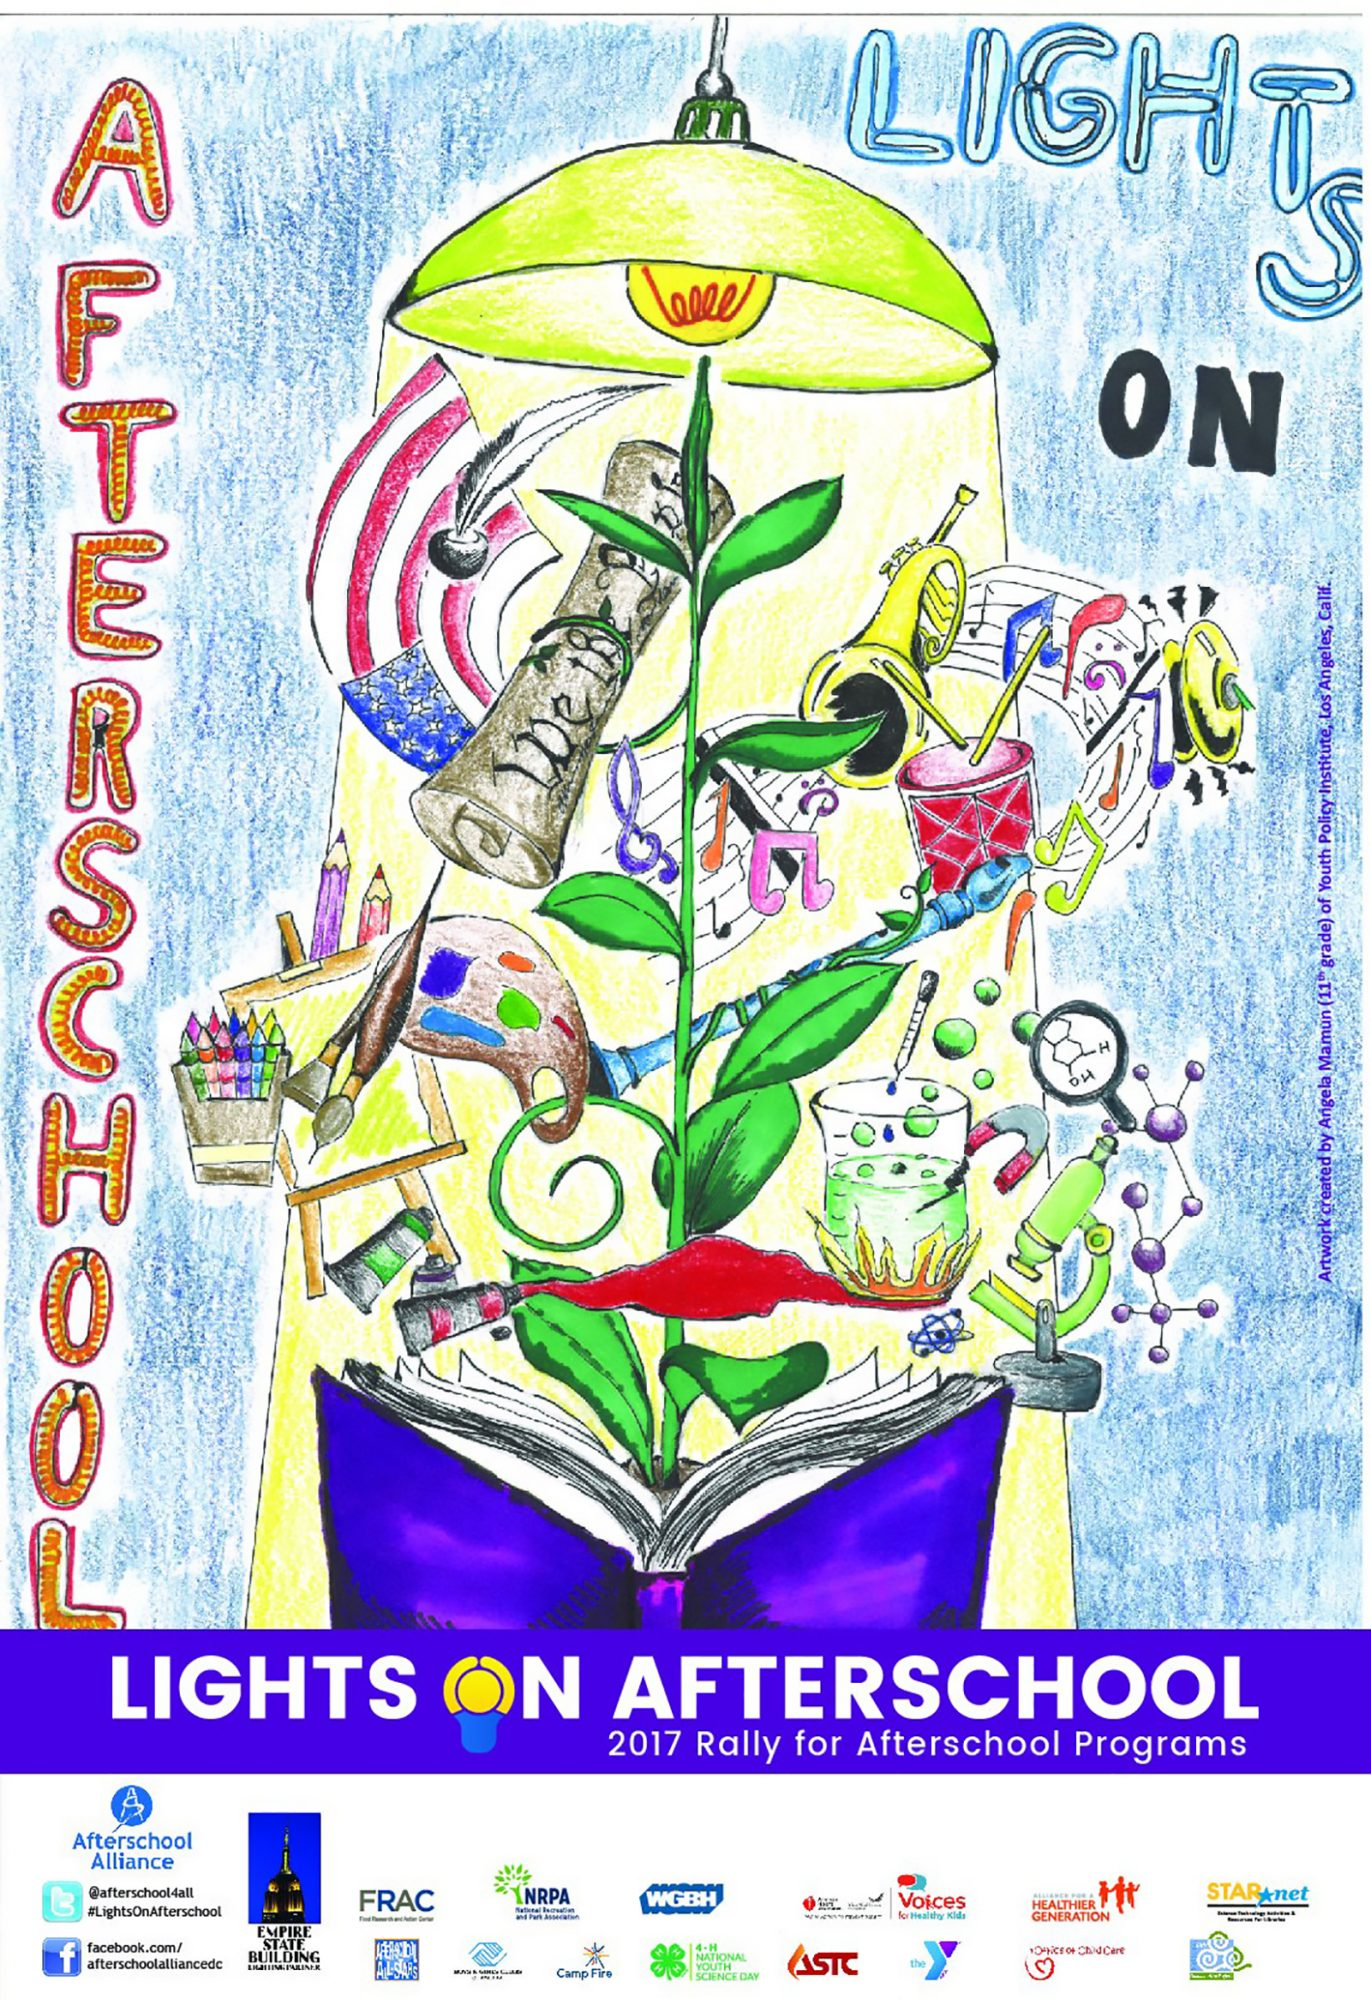 Celebrate The 18th Annual Lights On Afterschool Oct. 26, 2017!